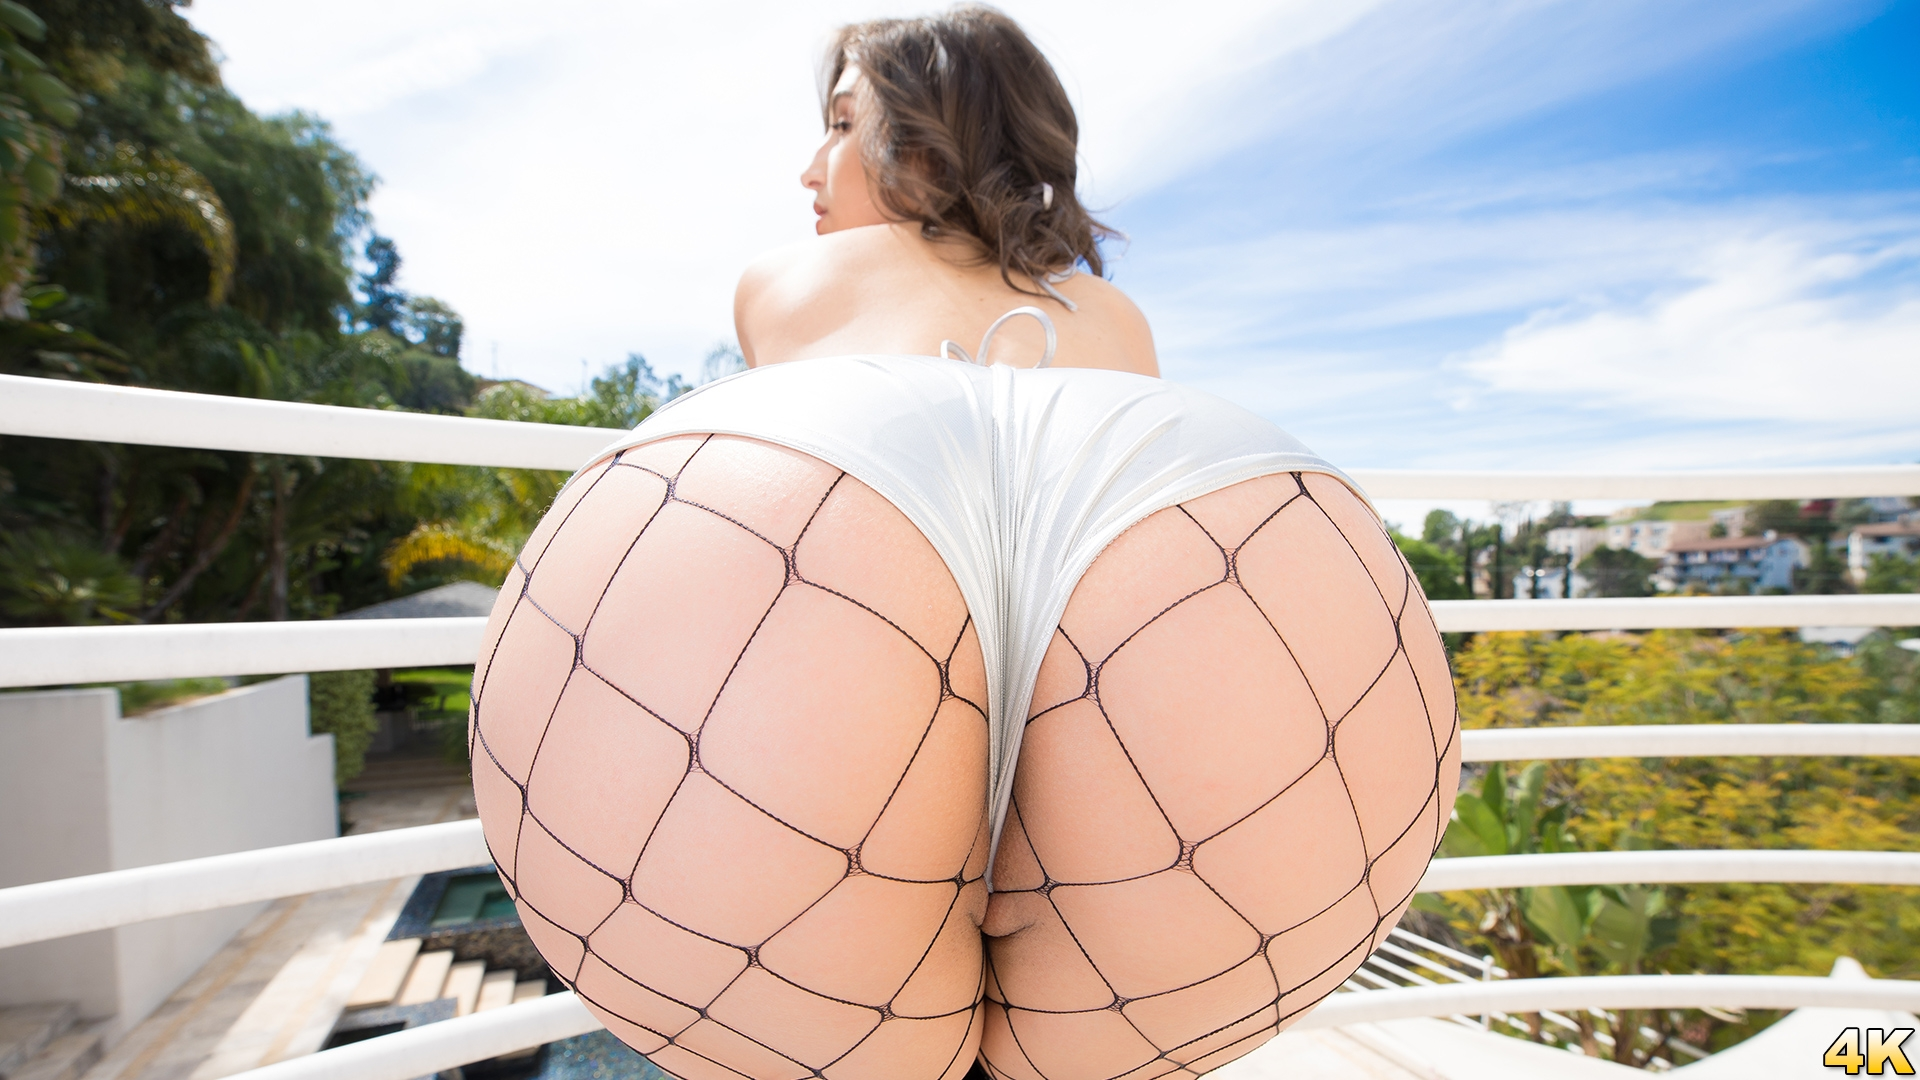 JulesJordan.com - Abella Danger Has Her ASS Stretched Open By A Big Black Cock